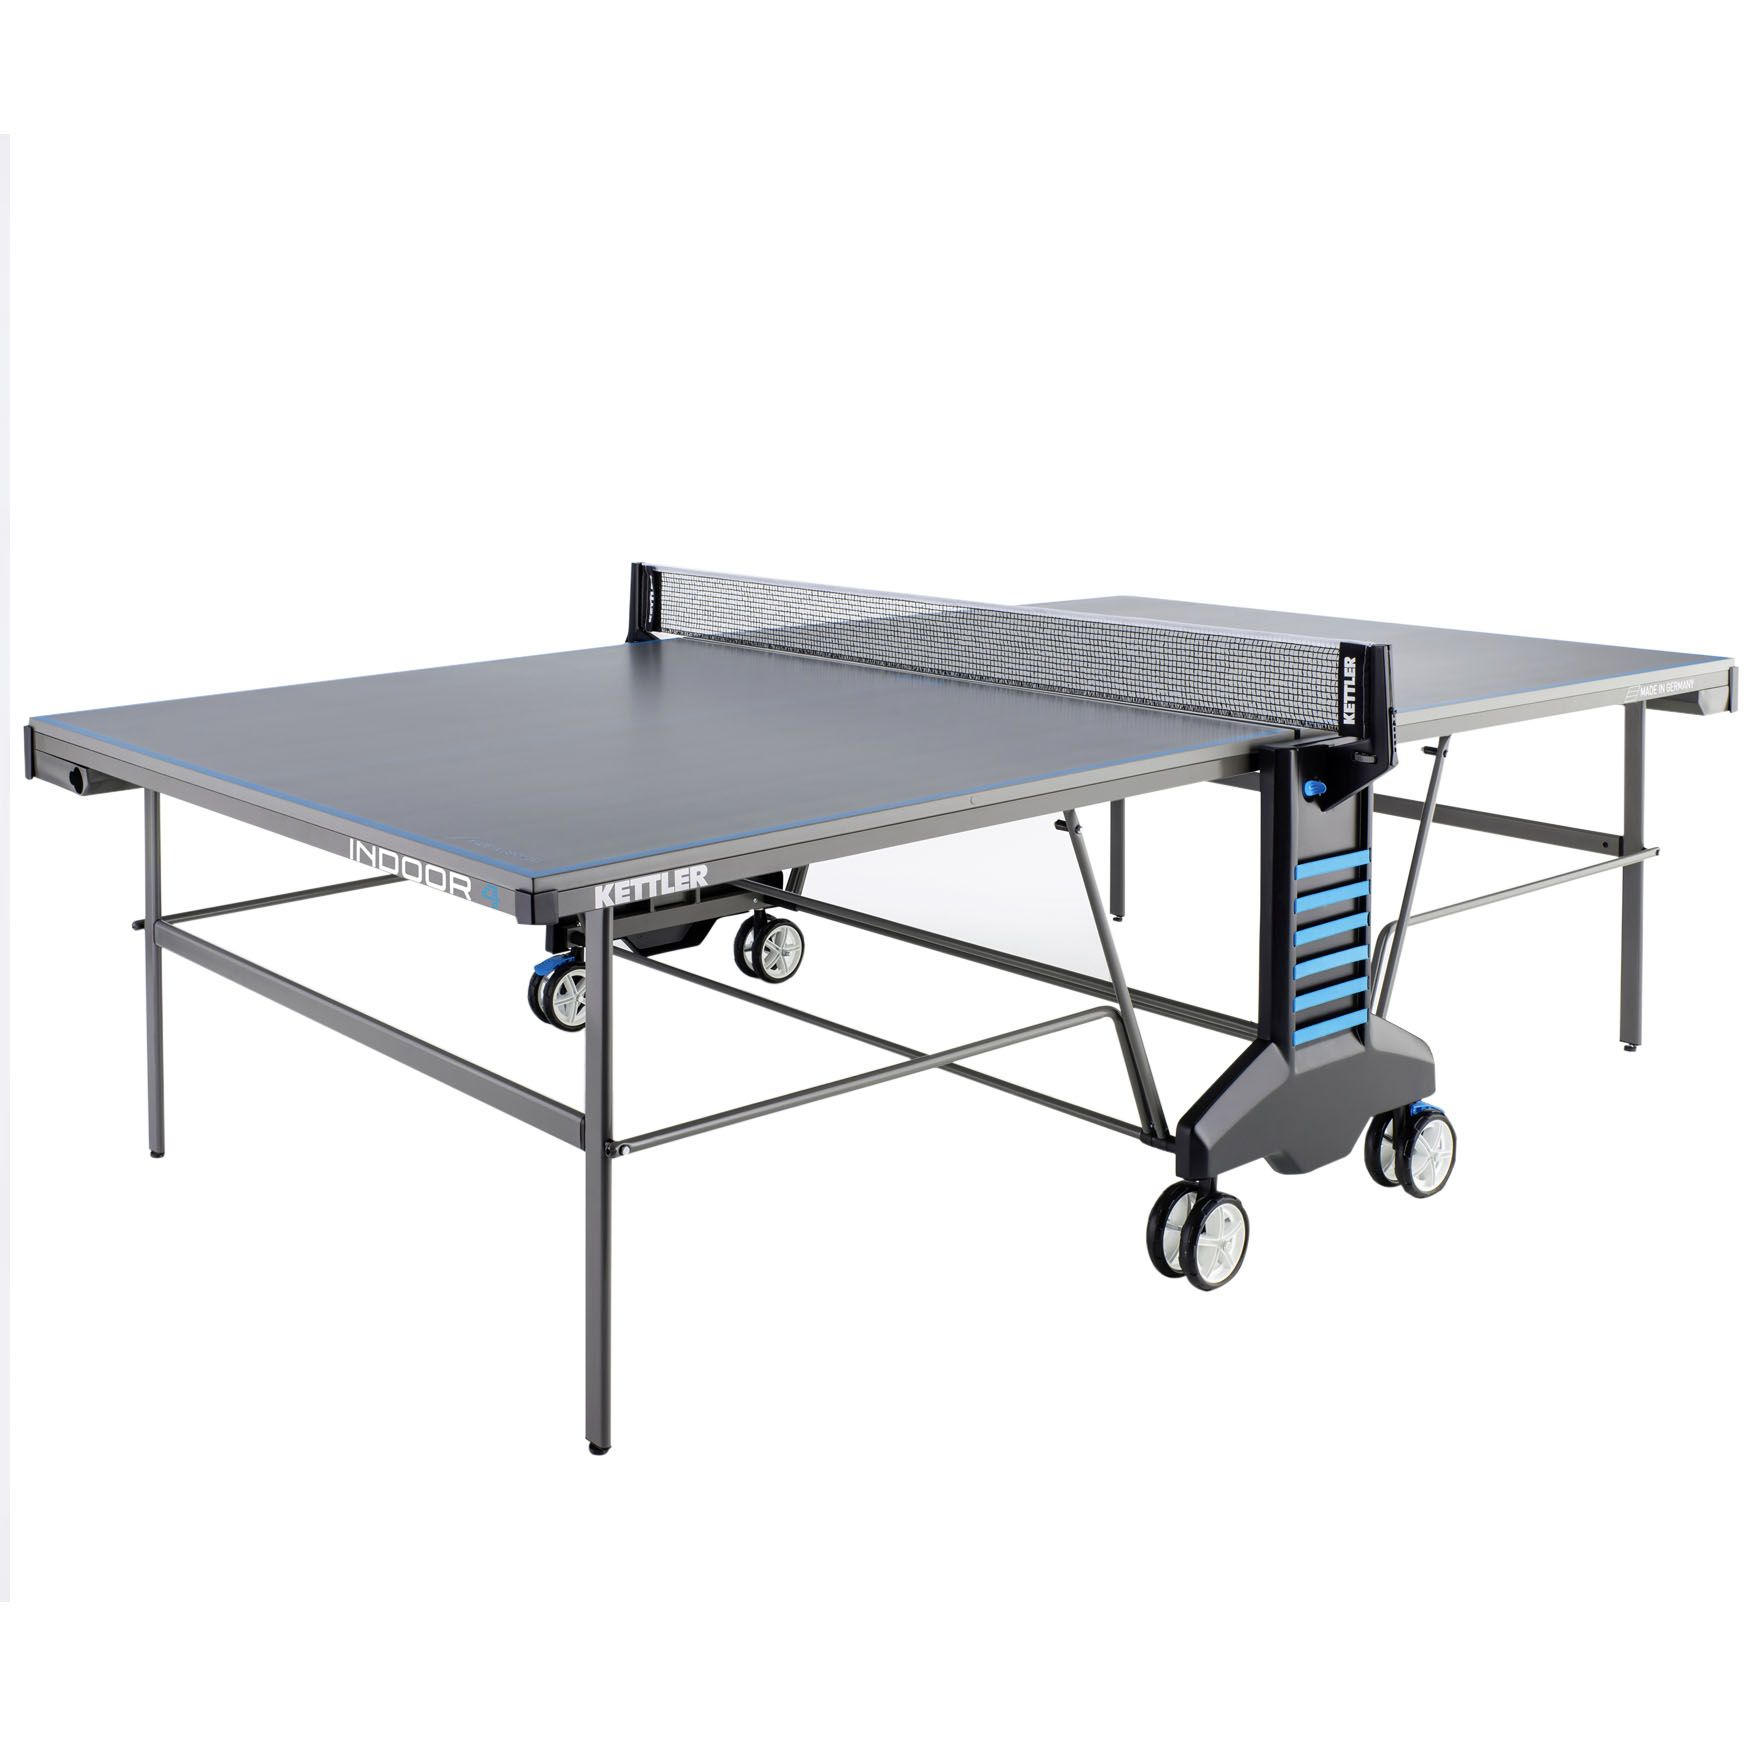 Wooden Fold Up Table picture on kettler classic indoor 4 table tennis table with Wooden Fold Up Table, Folding Table aaa869baa6f88be9254e29c3a567cb93